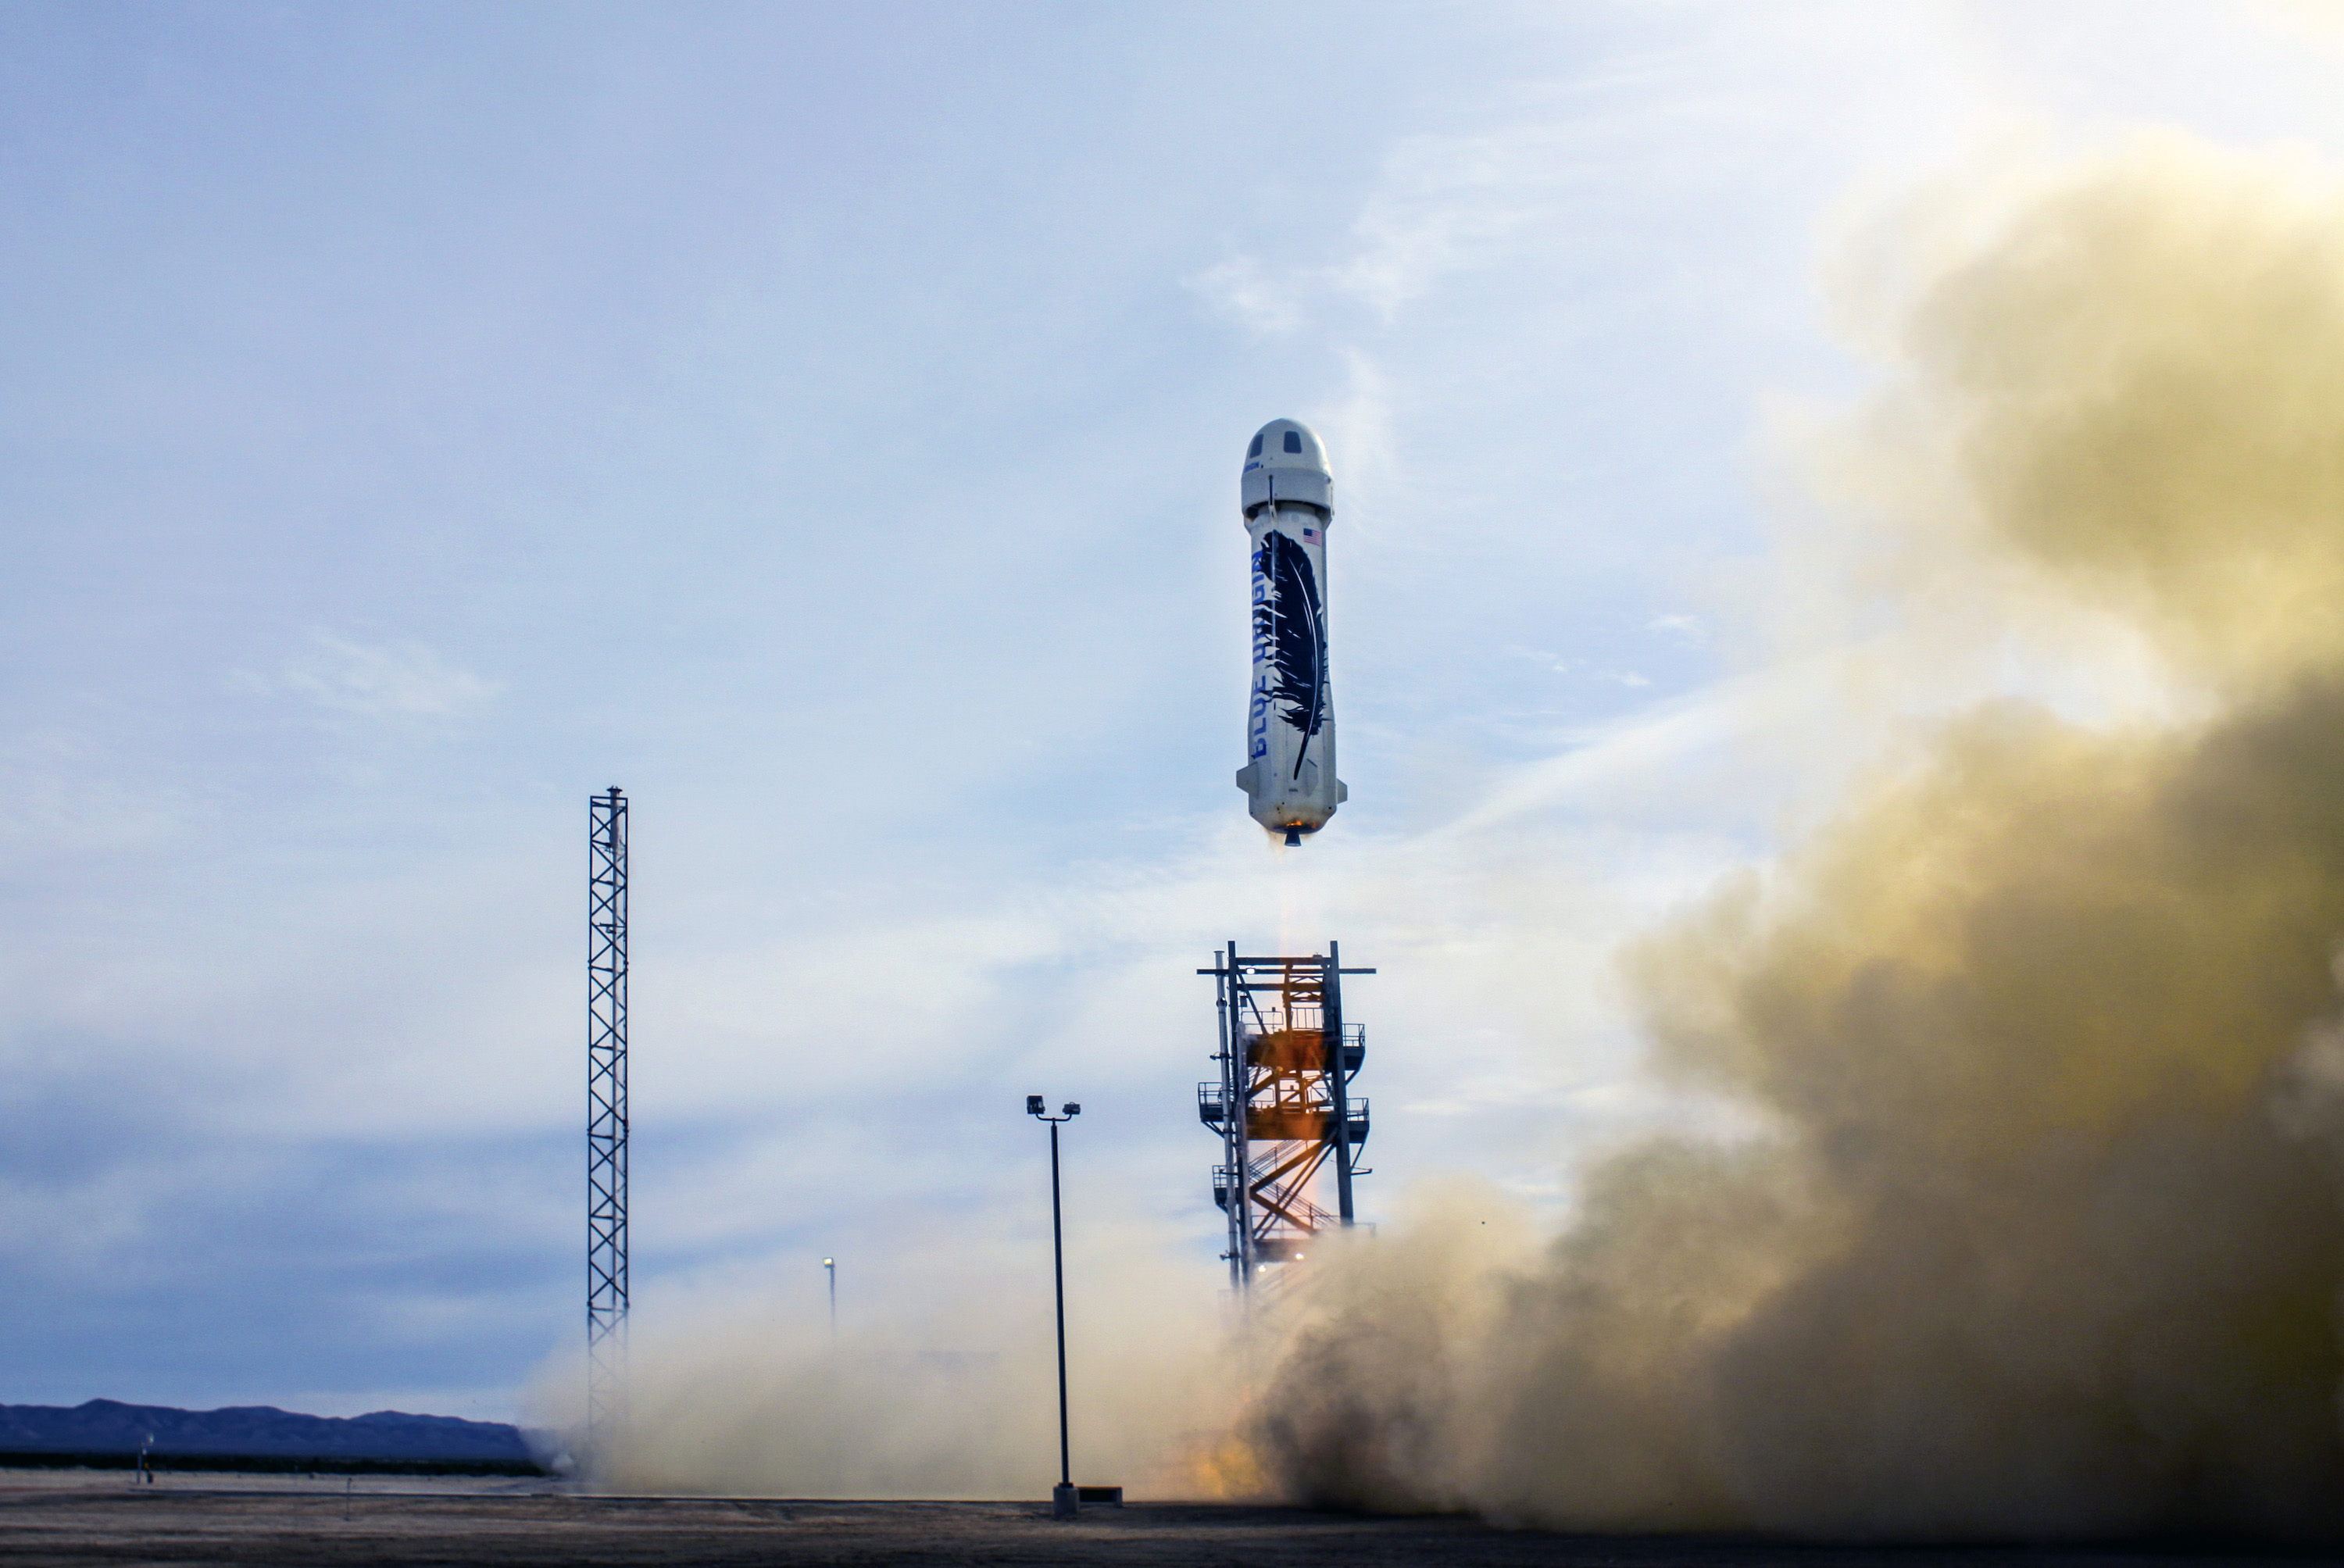 Blue Origin re-usable spaceship launch